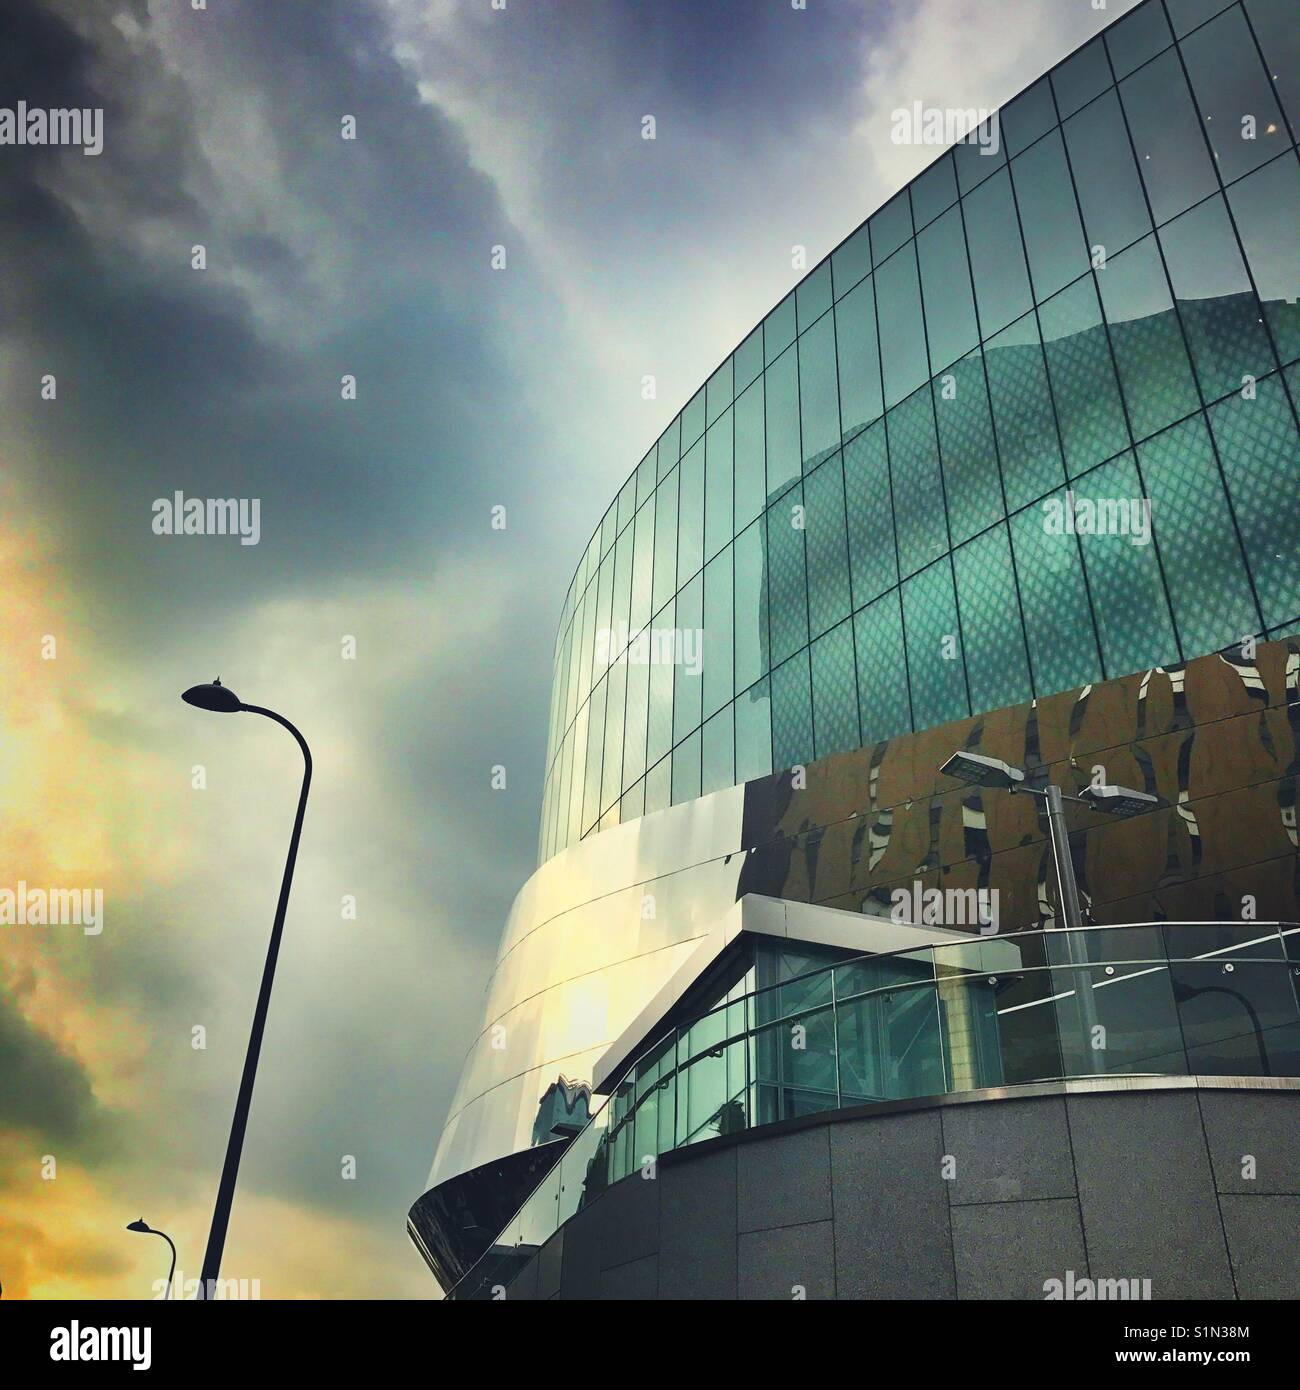 Grand Central Station formerly known as New Street Station, Birmingham, UK - Stock Image